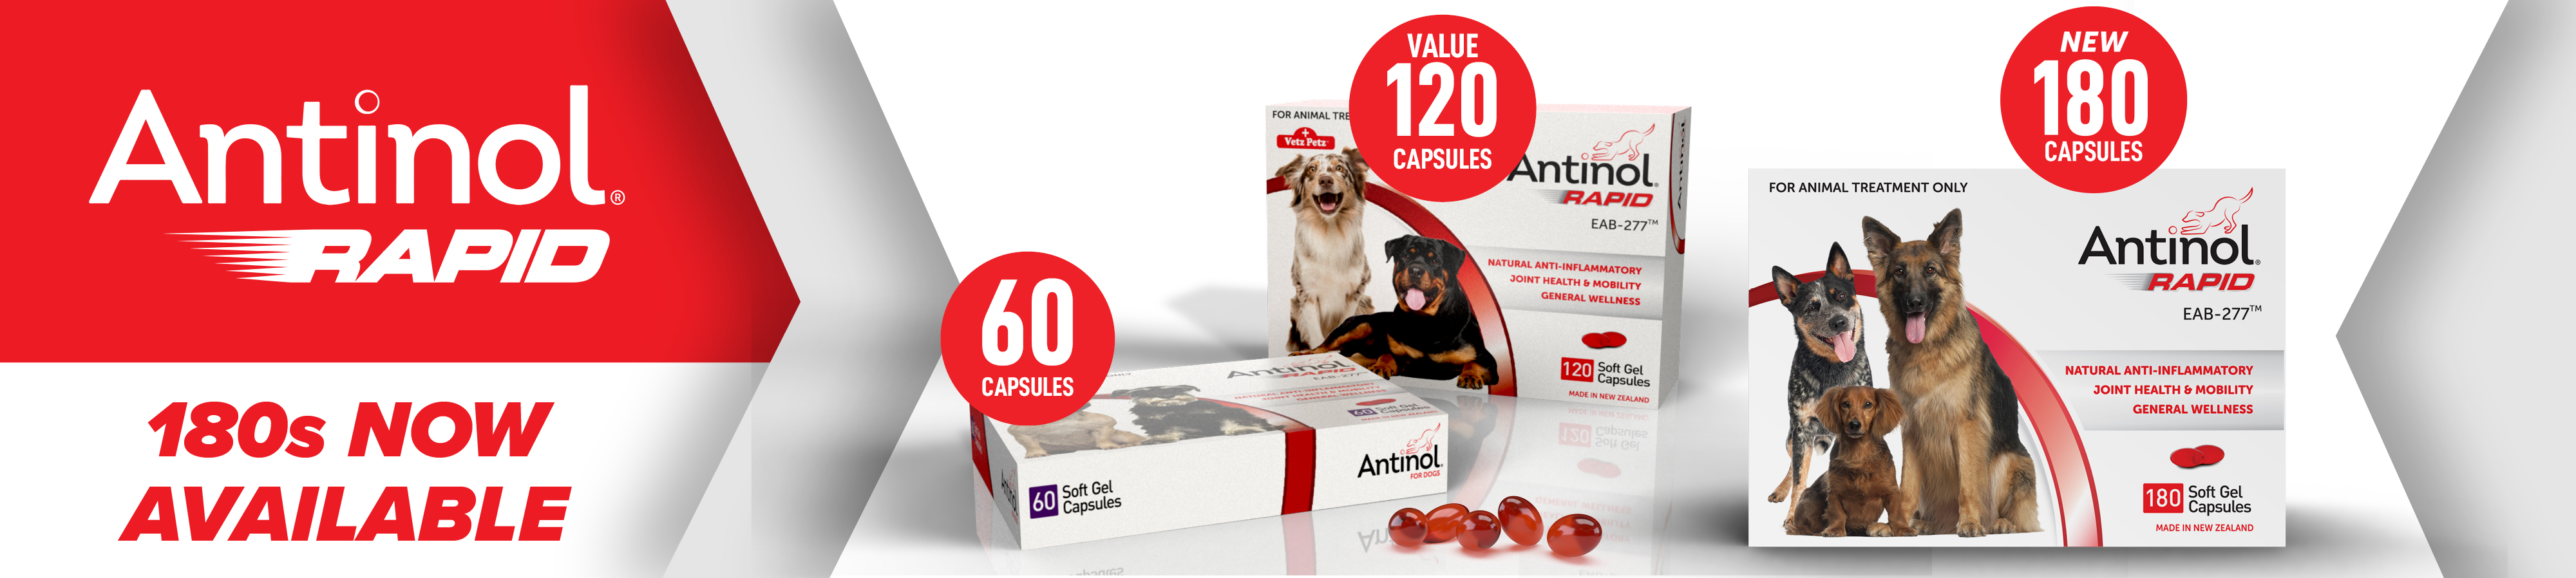 Cenvet-Website-Antinol-180s